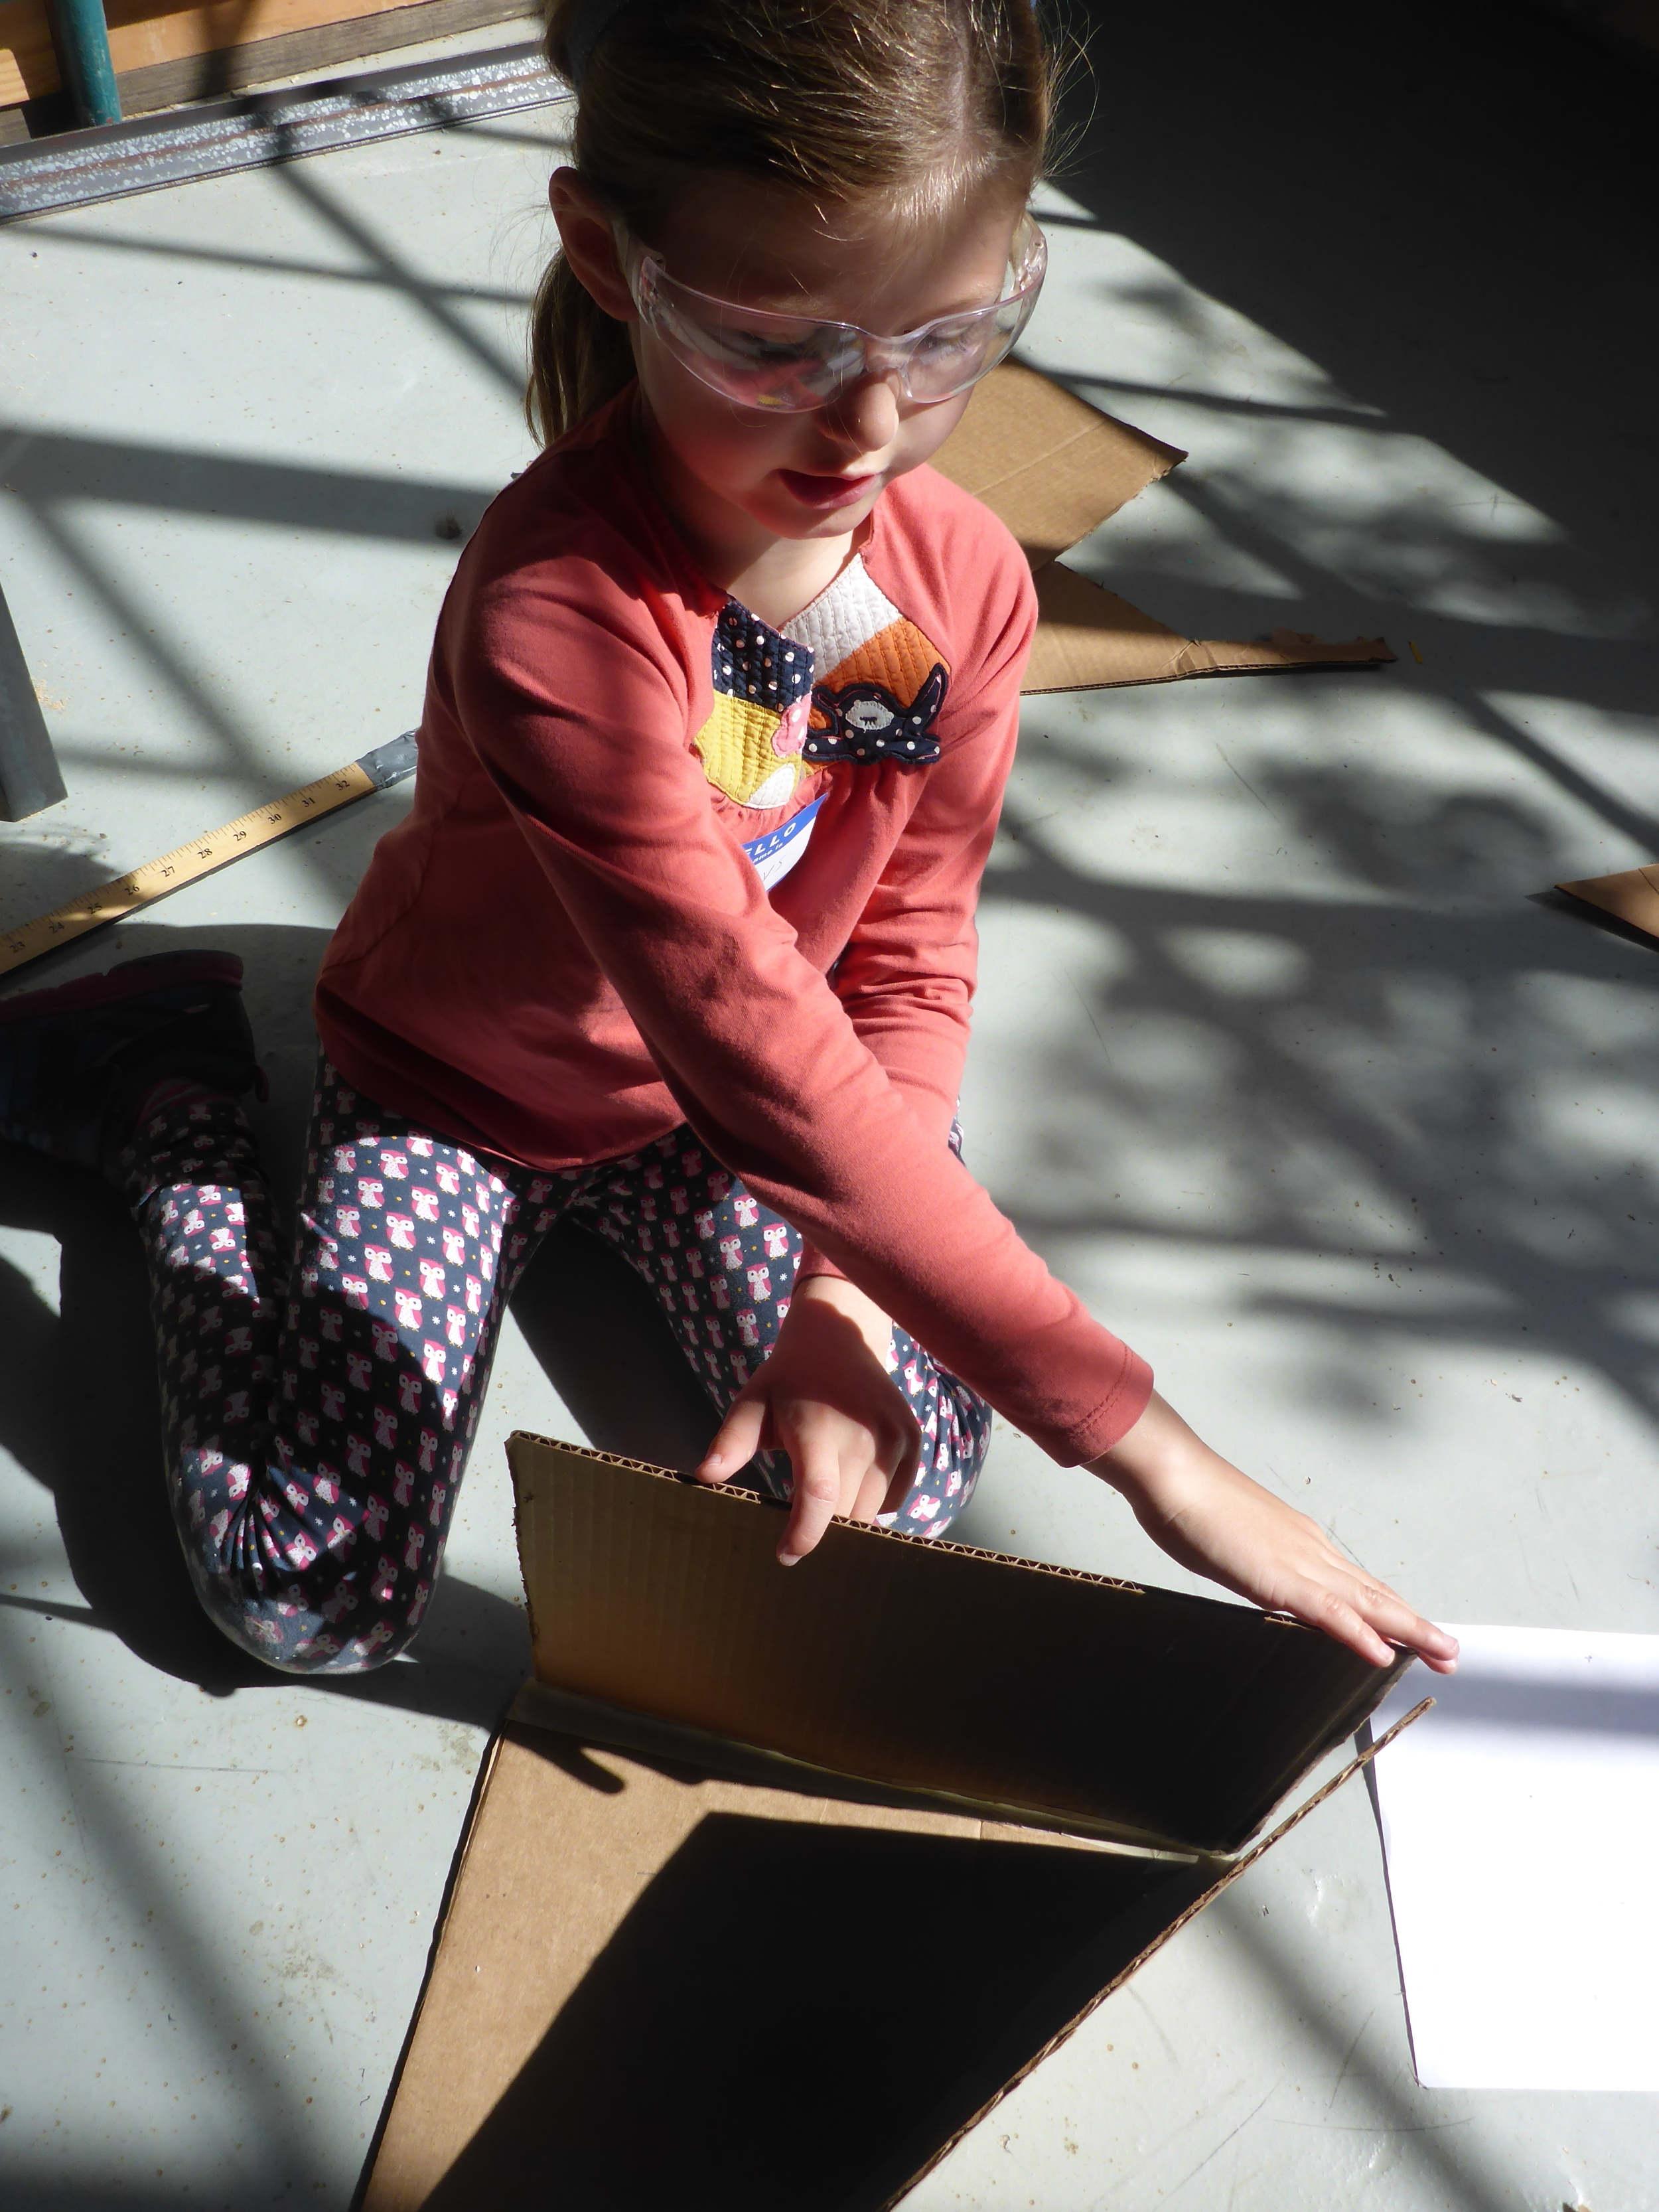 Maelys builds iteration 2 of our magic grow room prototype.